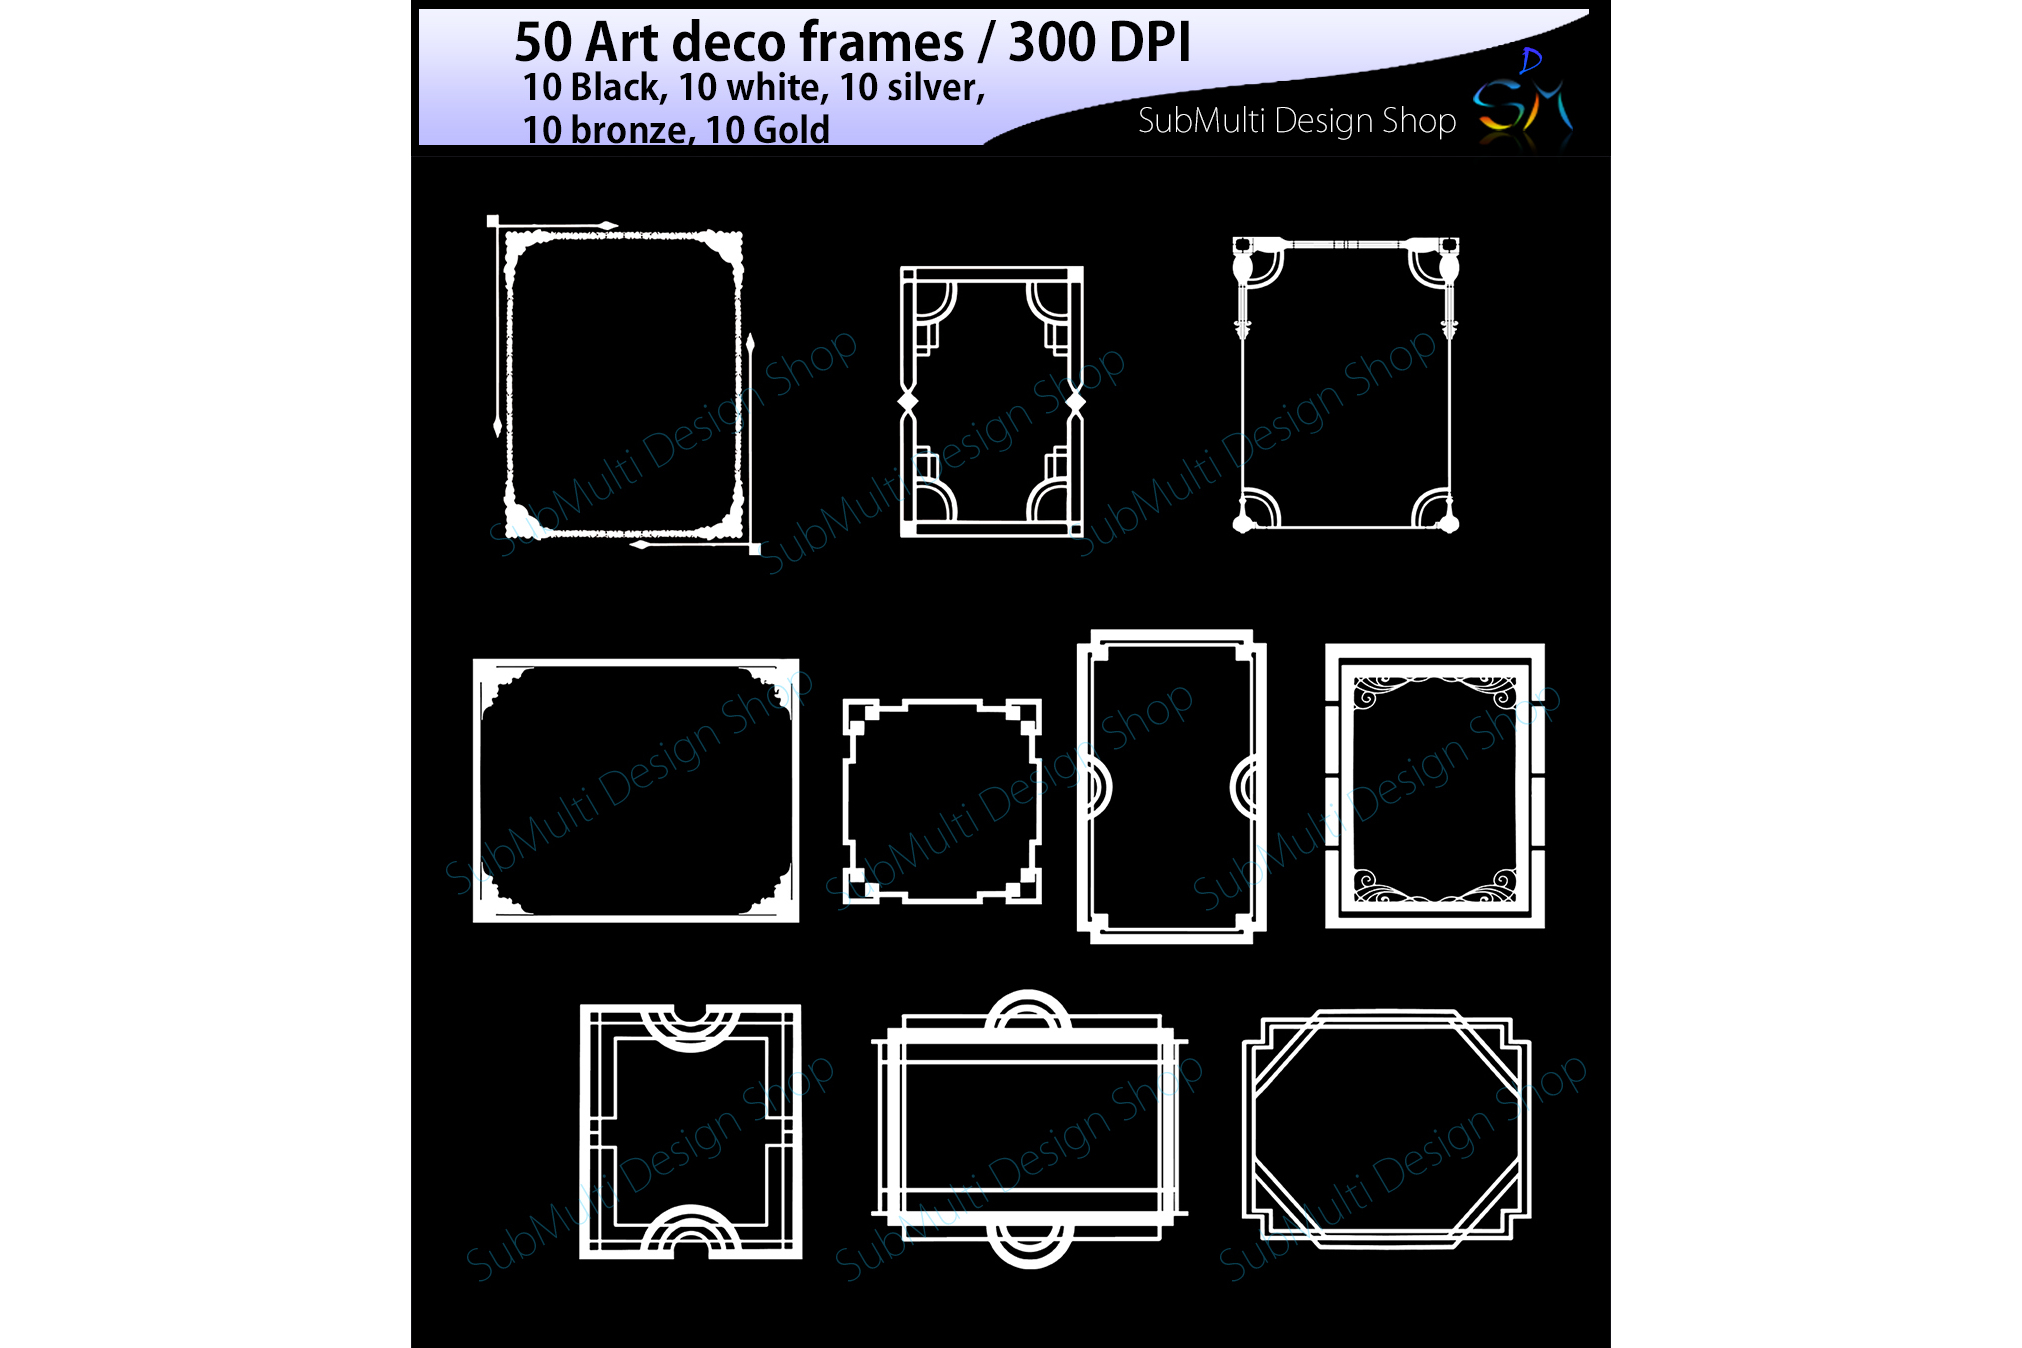 art deco frames / art deco frames clipart / art deco frames silhouette / art deco gold frames / art deco silver frame / digital/High Quality example image 5